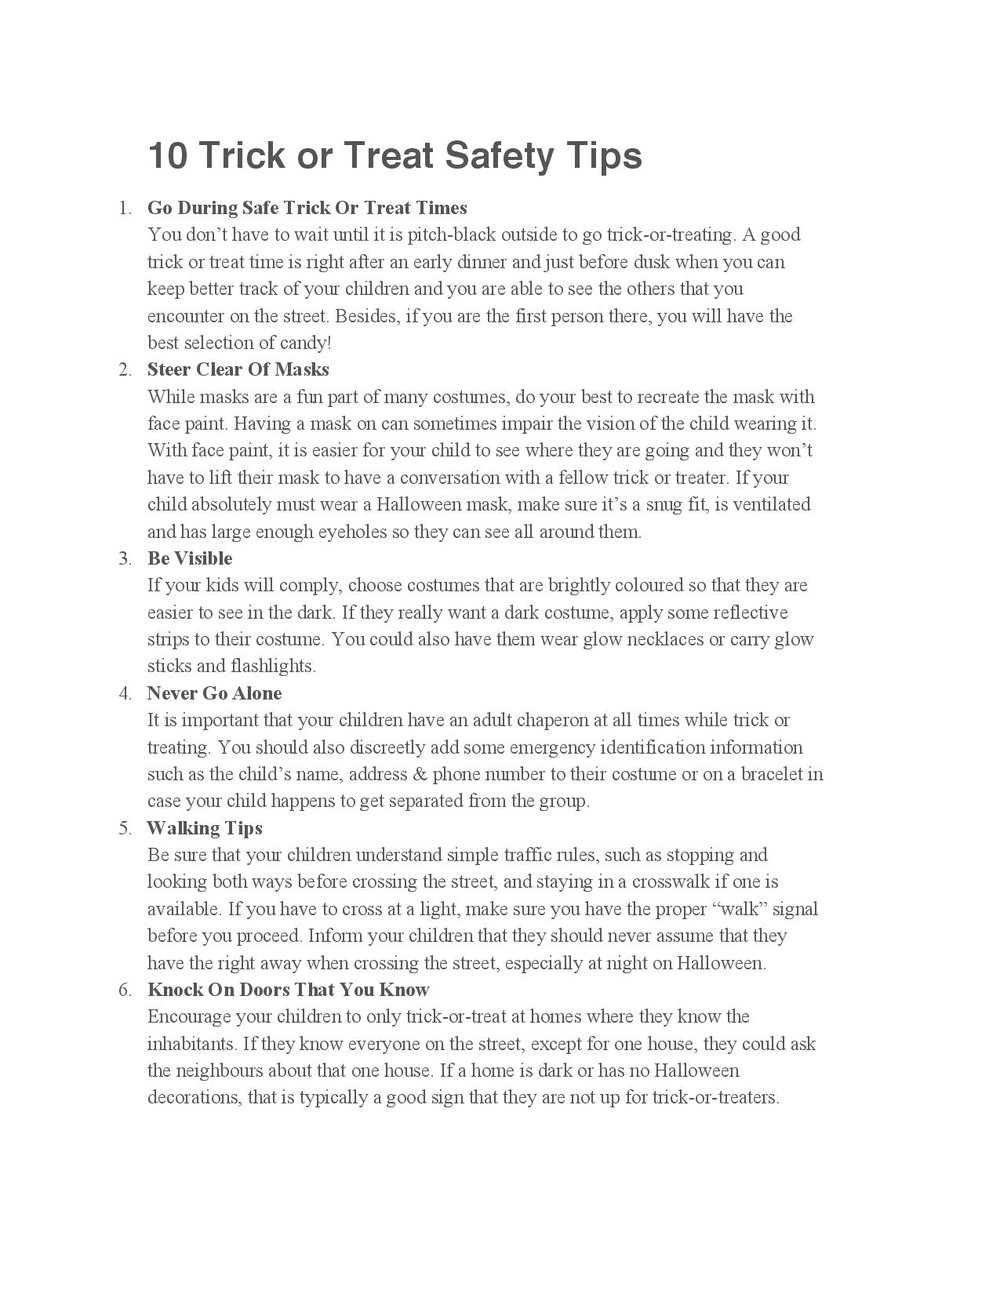 10 Trick or Treat Safety Tips-page-001.jpg